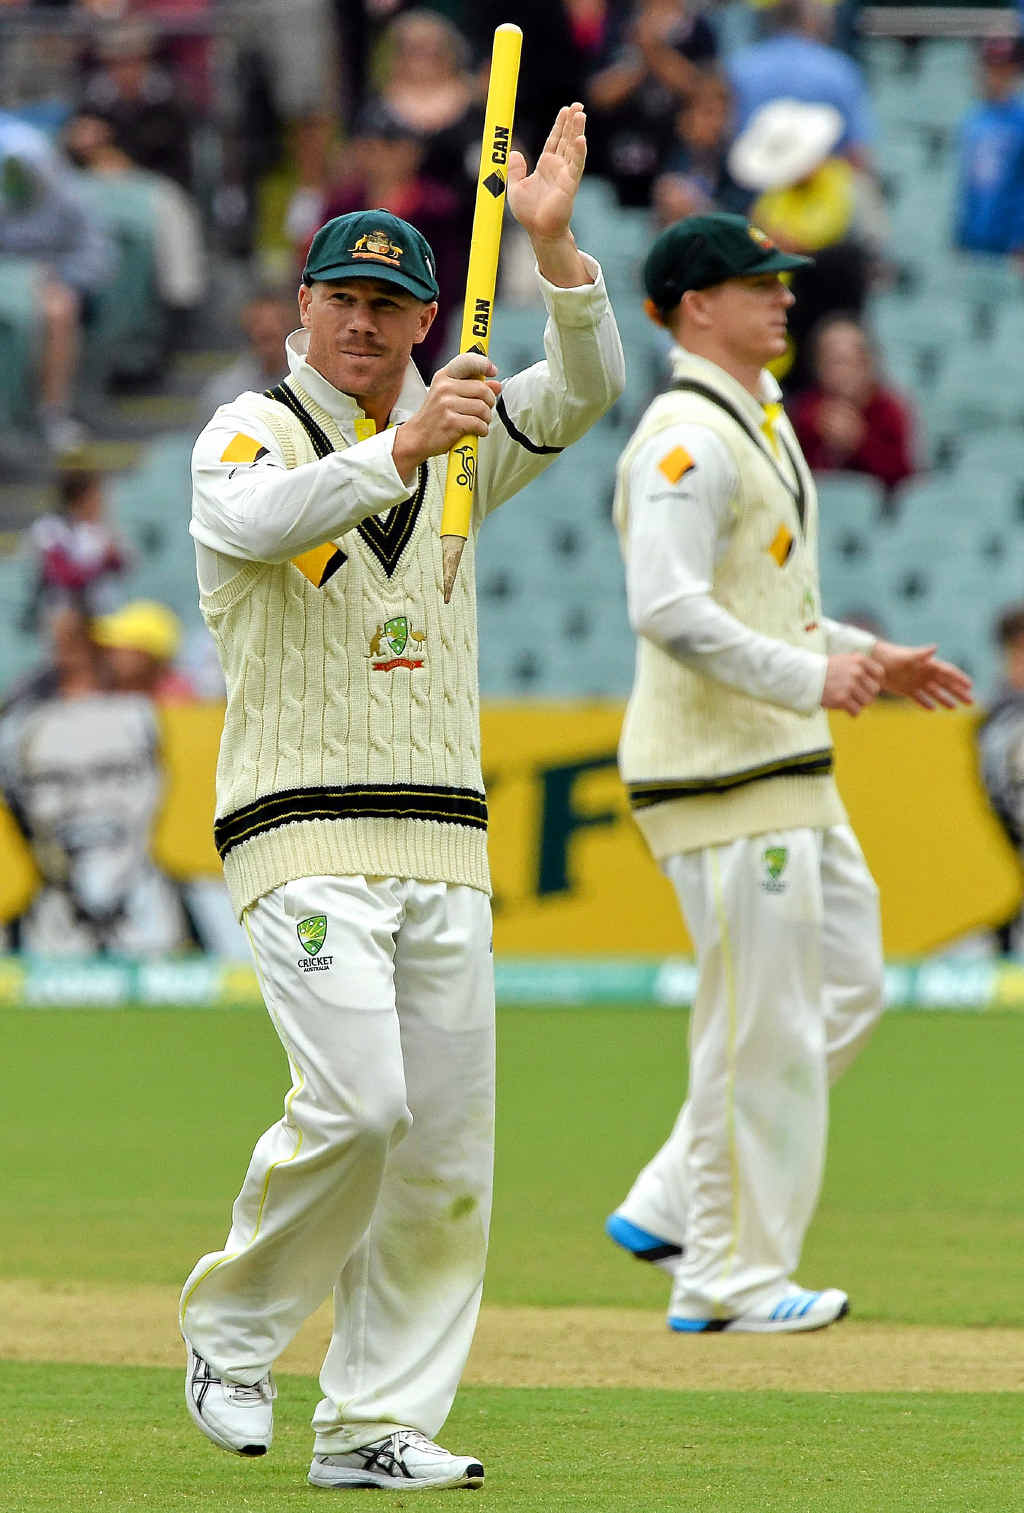 STARTING POINT: Australian cricketer David Warner played in the Lismore carnival many years ago as a youngster.